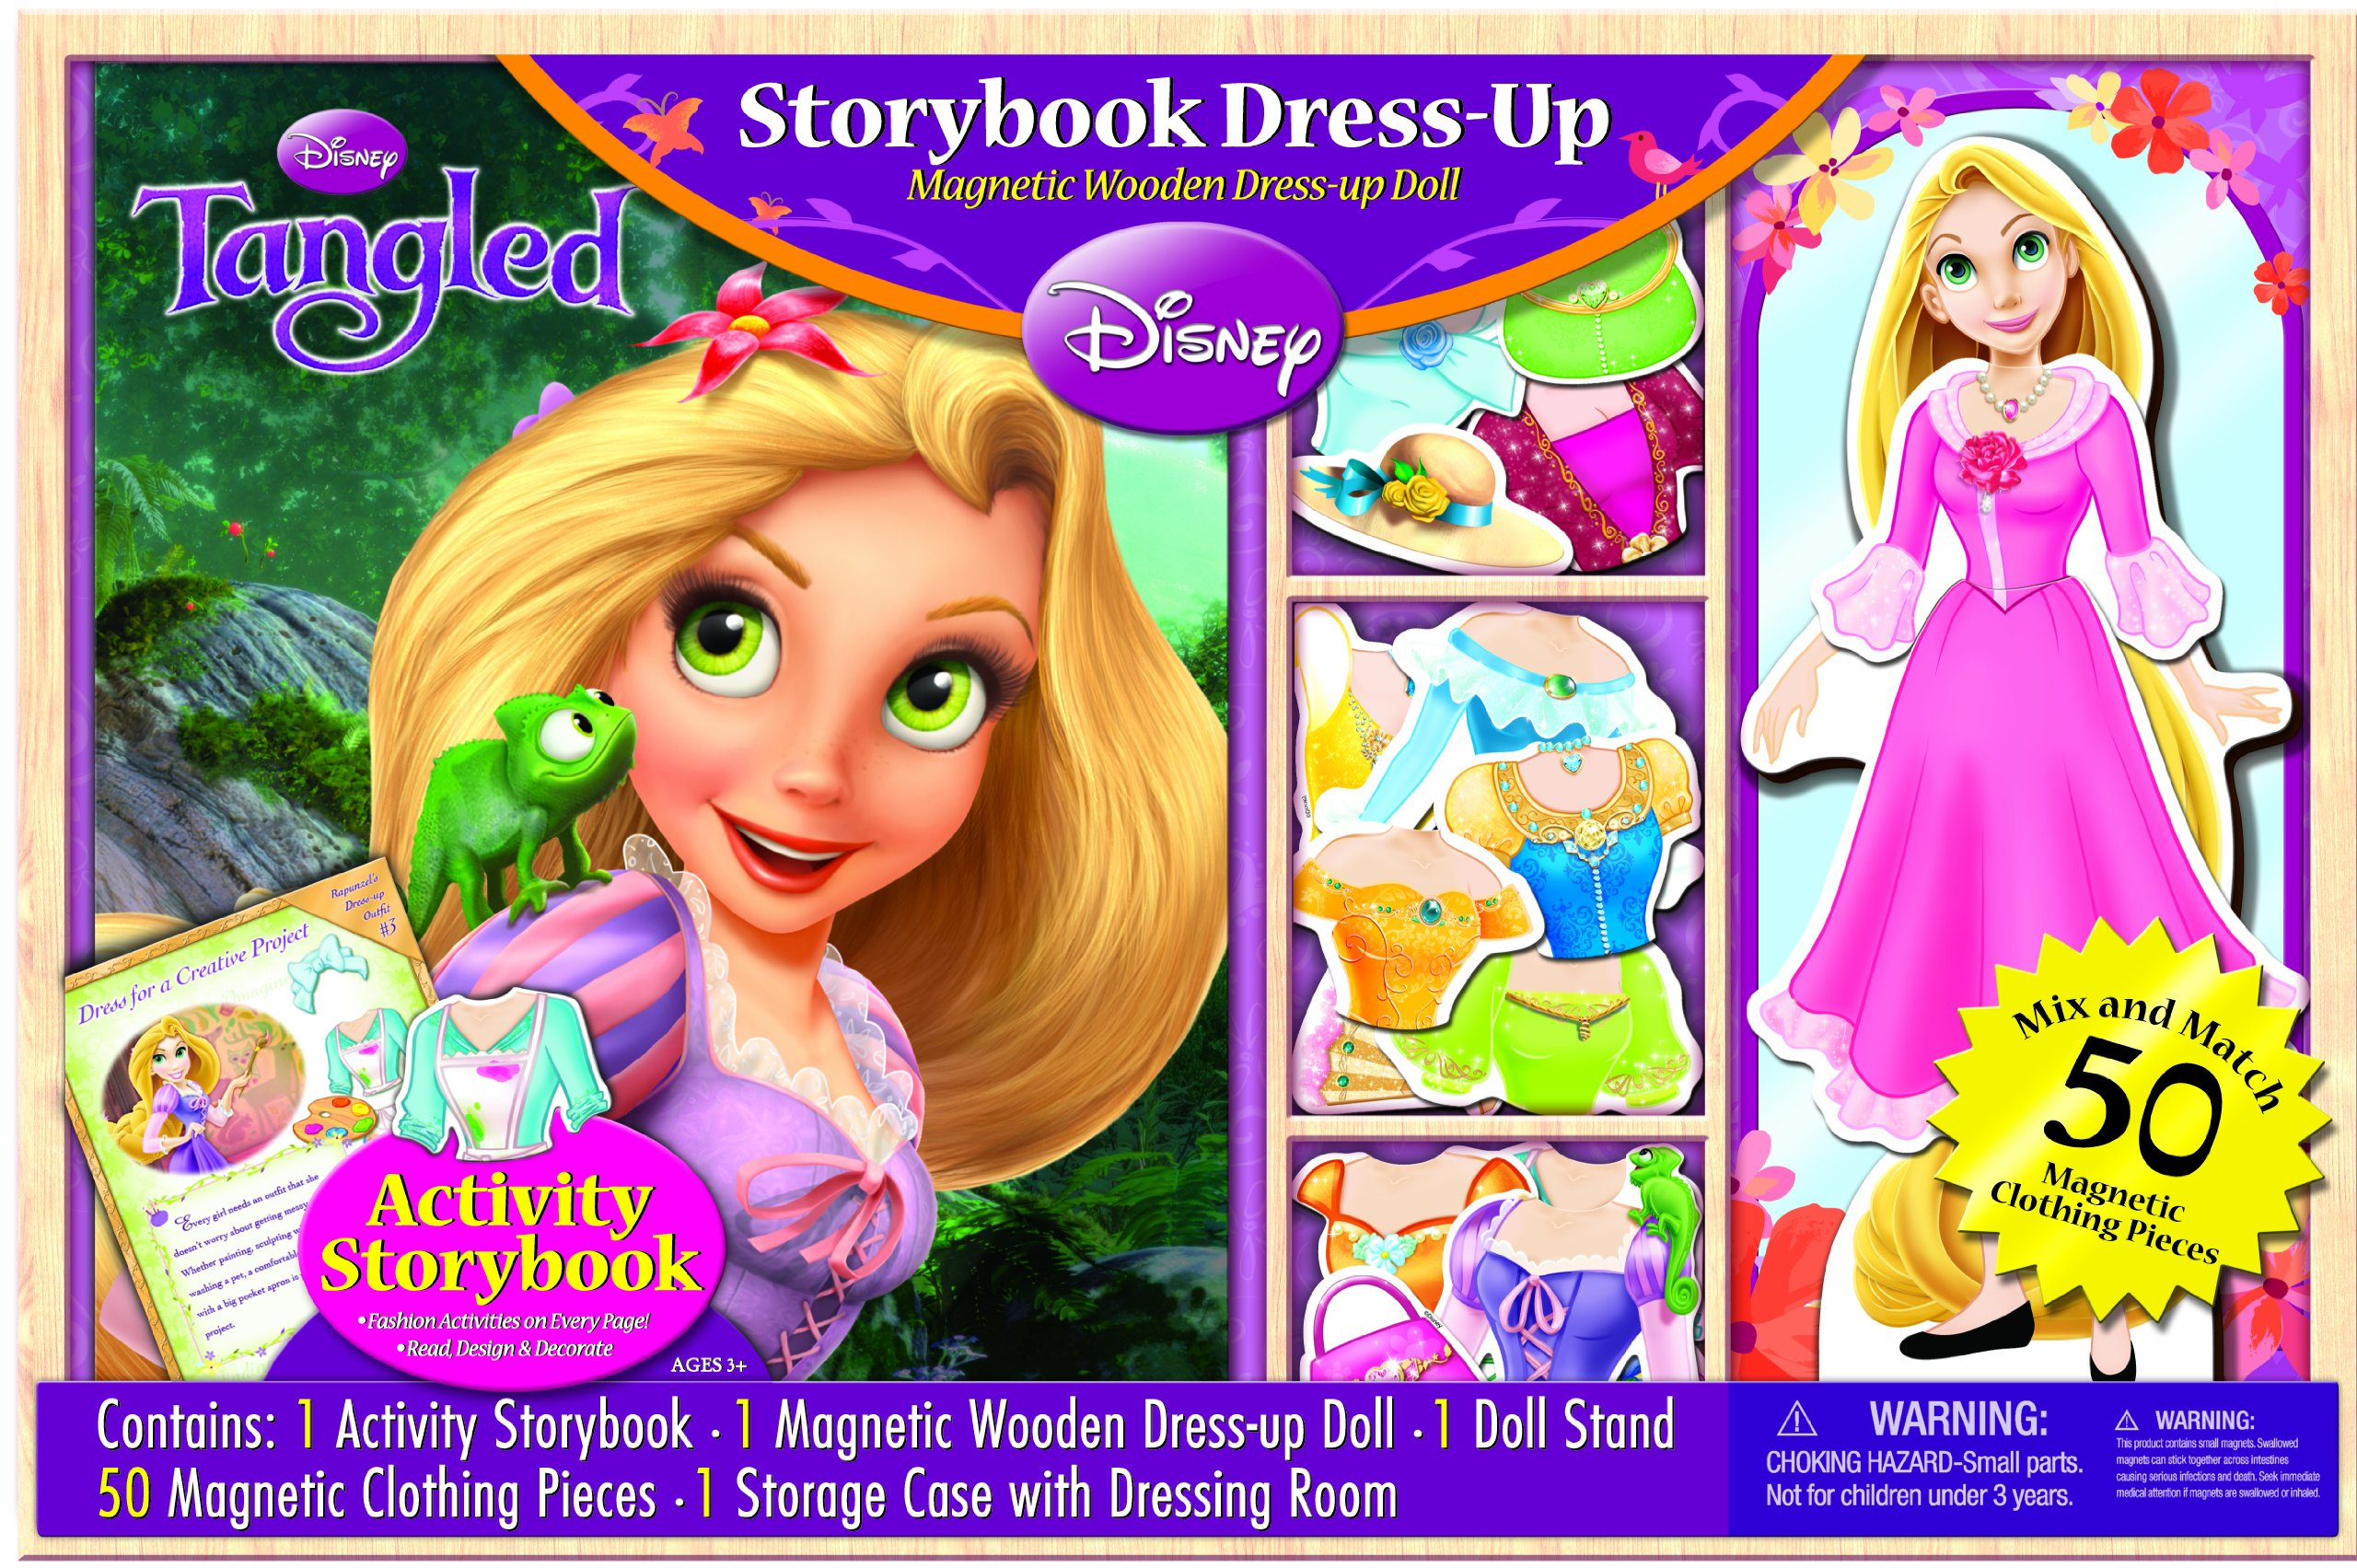 Bendon Disney Tangled Storybook Dress Up Magnetic Wooden Doll Set, 50-Piece